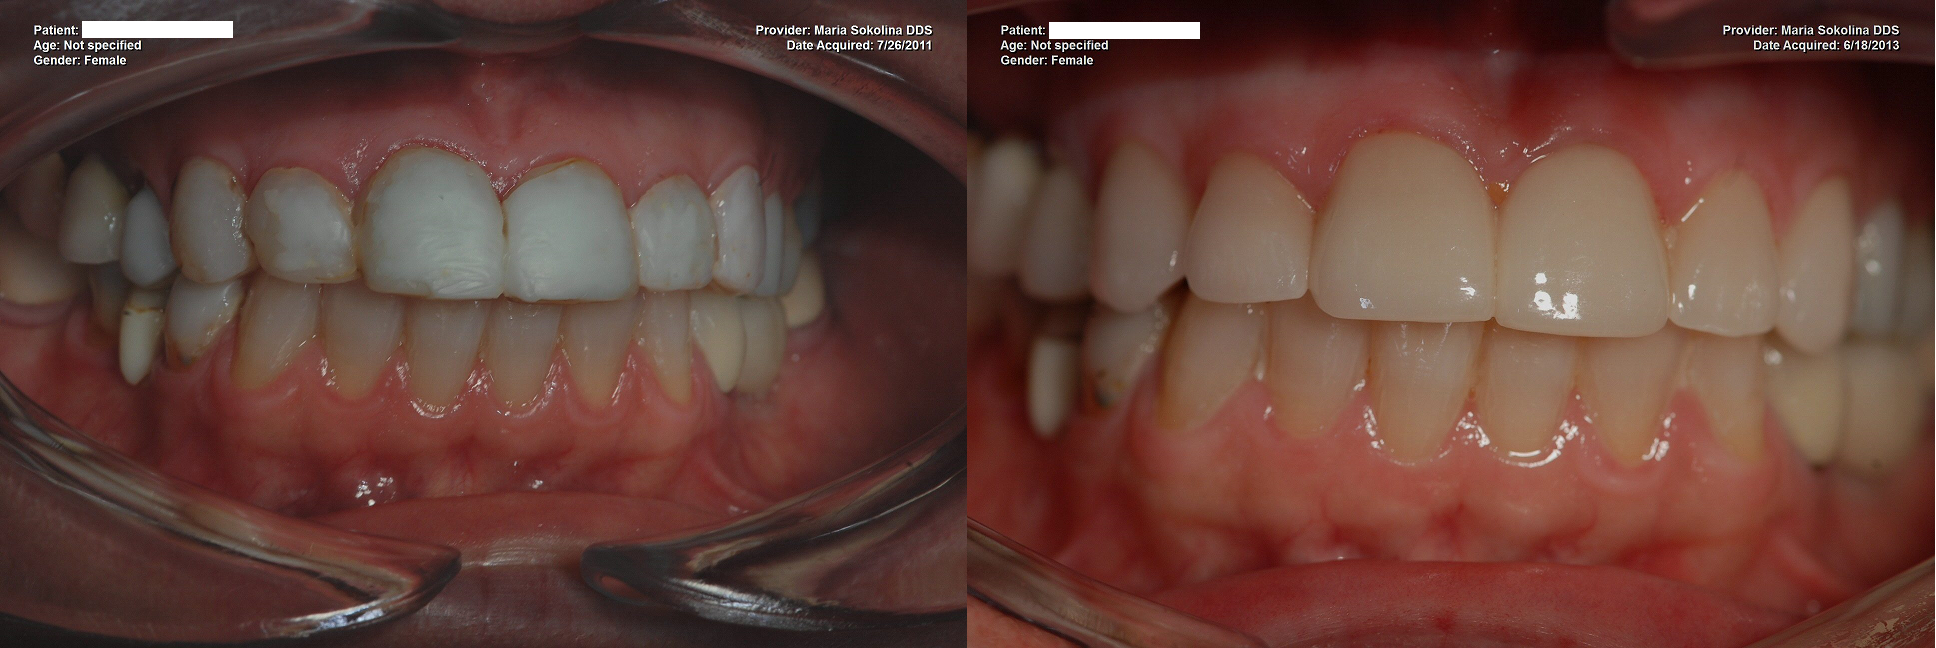 Replacement of composite bonding with porcelain veneers